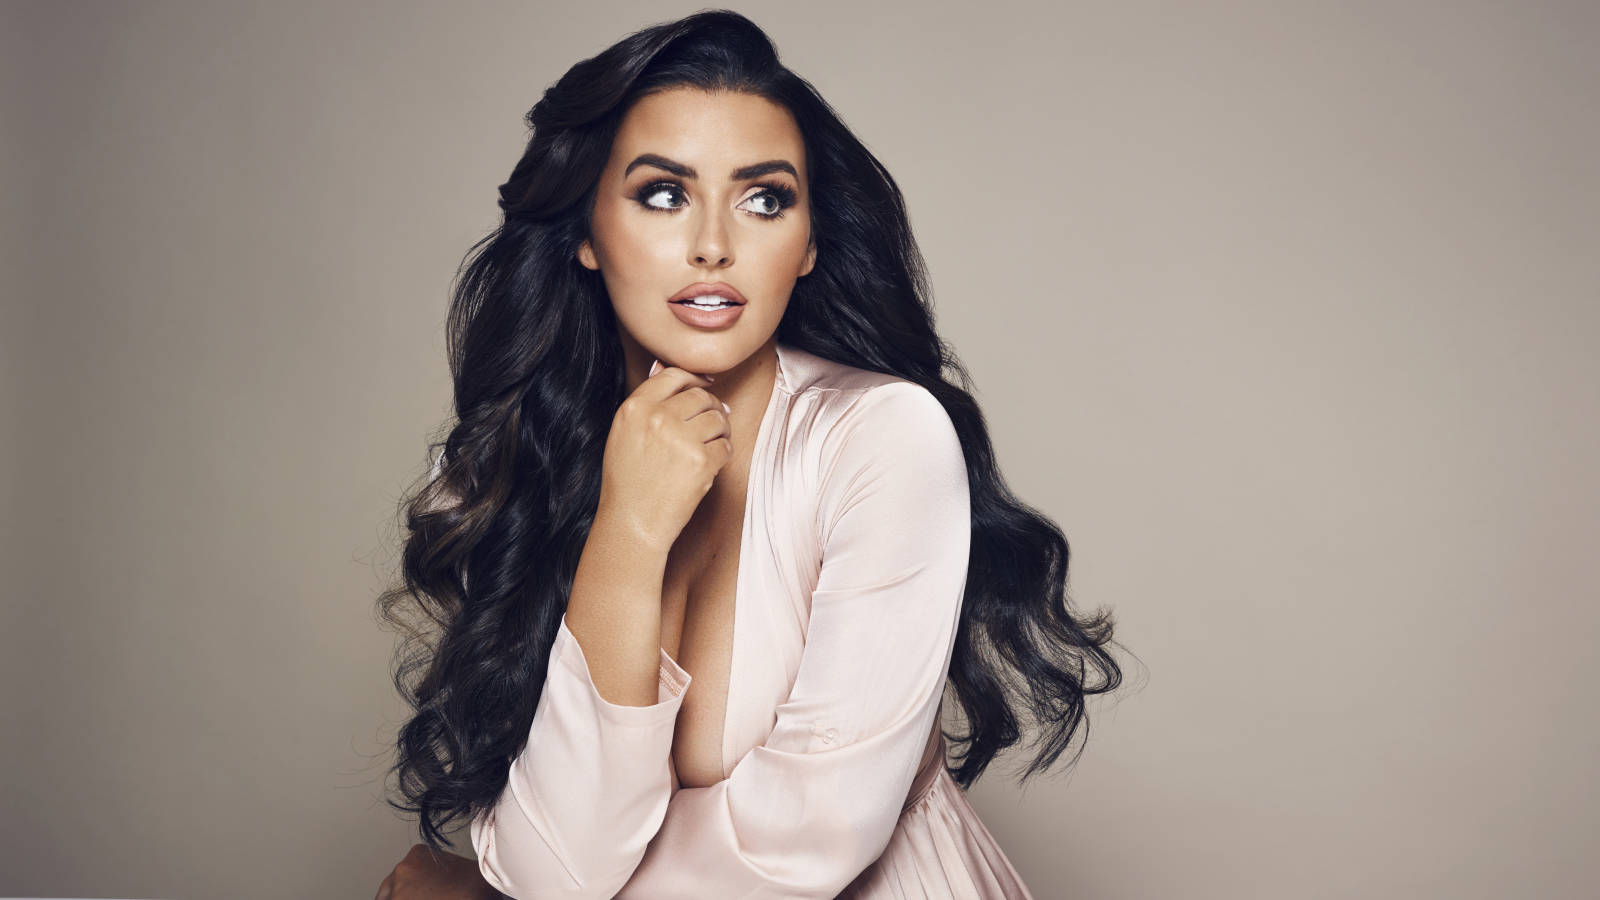 Abigail Ratchford Wallpaper